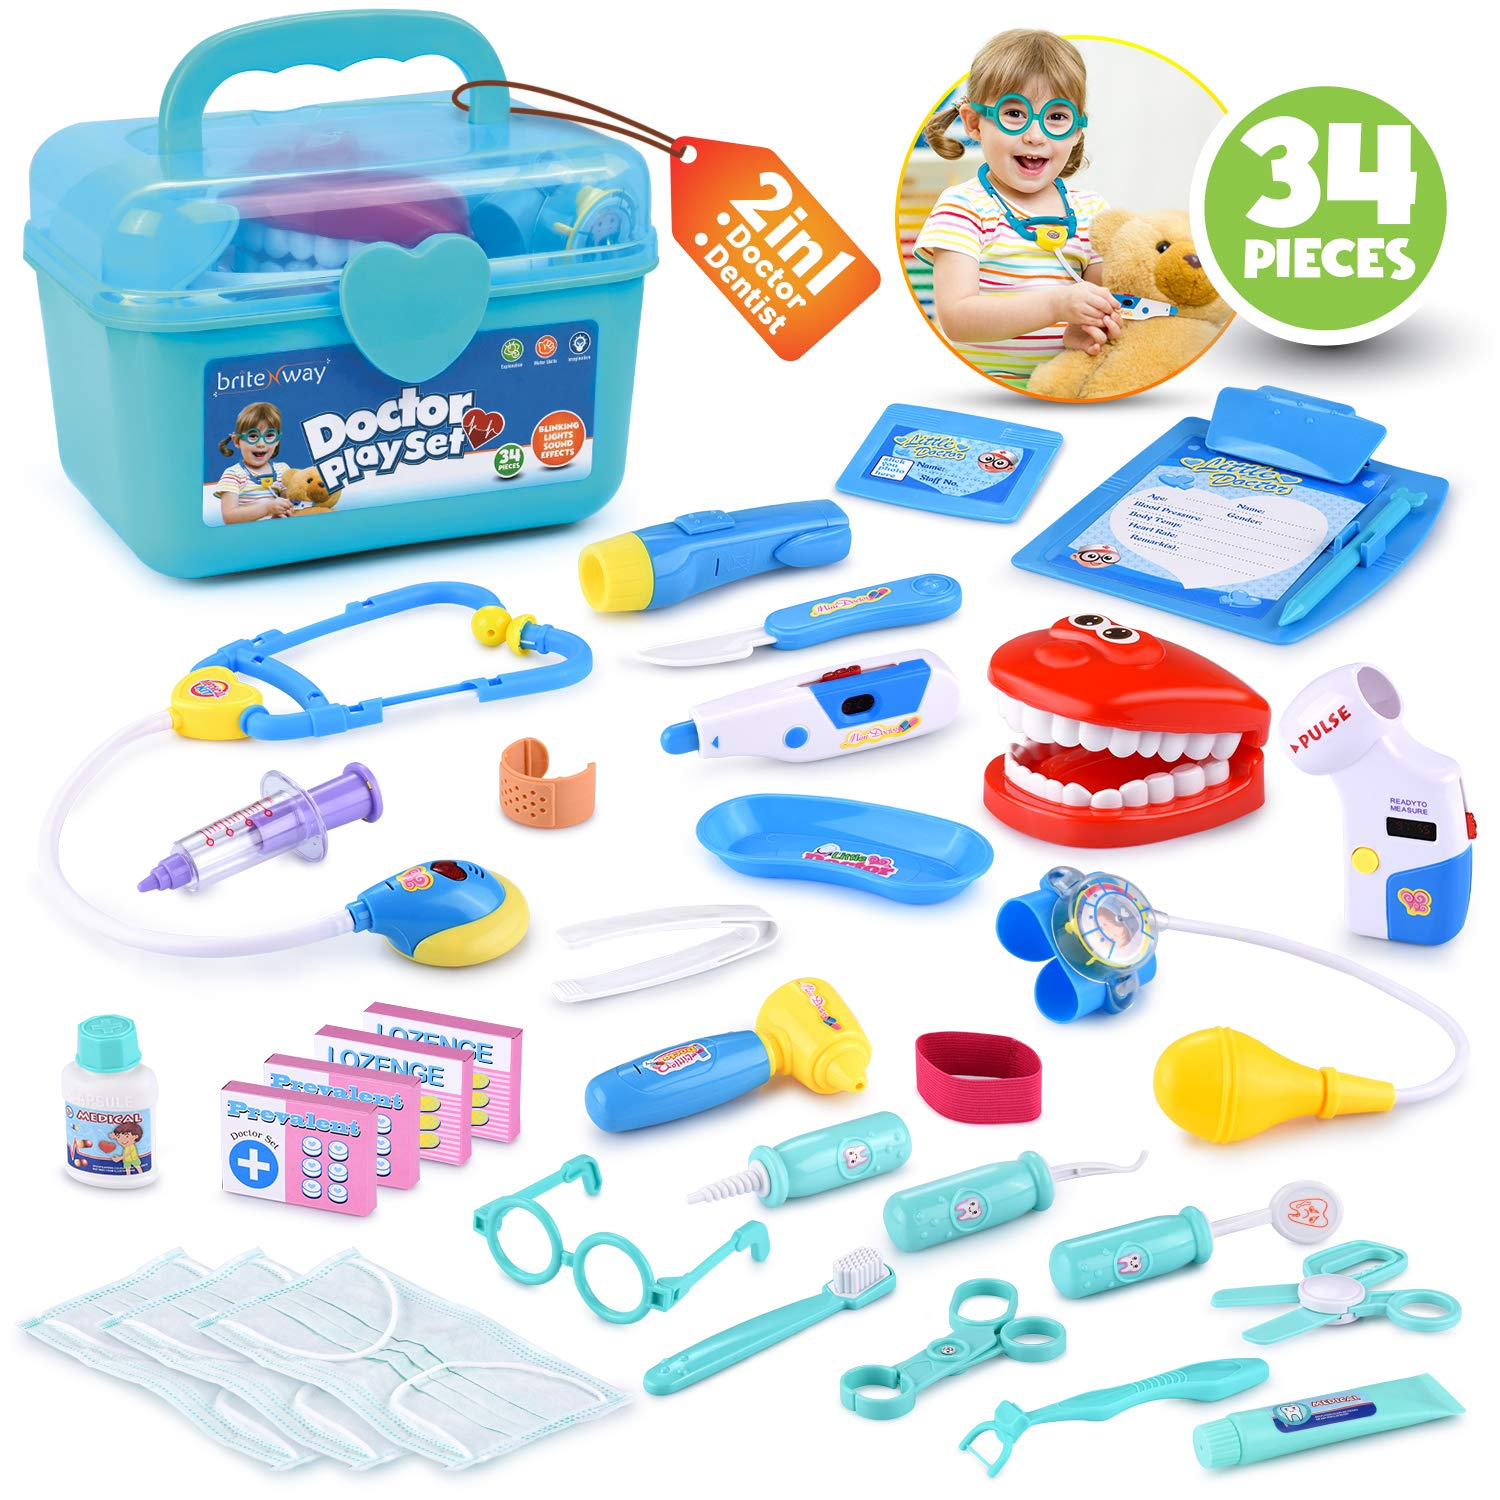 BRITENWAY Educational Doctor Medical Pretend Play Toy Set in Storage Box 34 Pcs - Battery Operated Tools with Lights & Sounds - Promote Learning, Hand to Eye Coordination, Fine Motor Skills by BRITENWAY (Image #1)